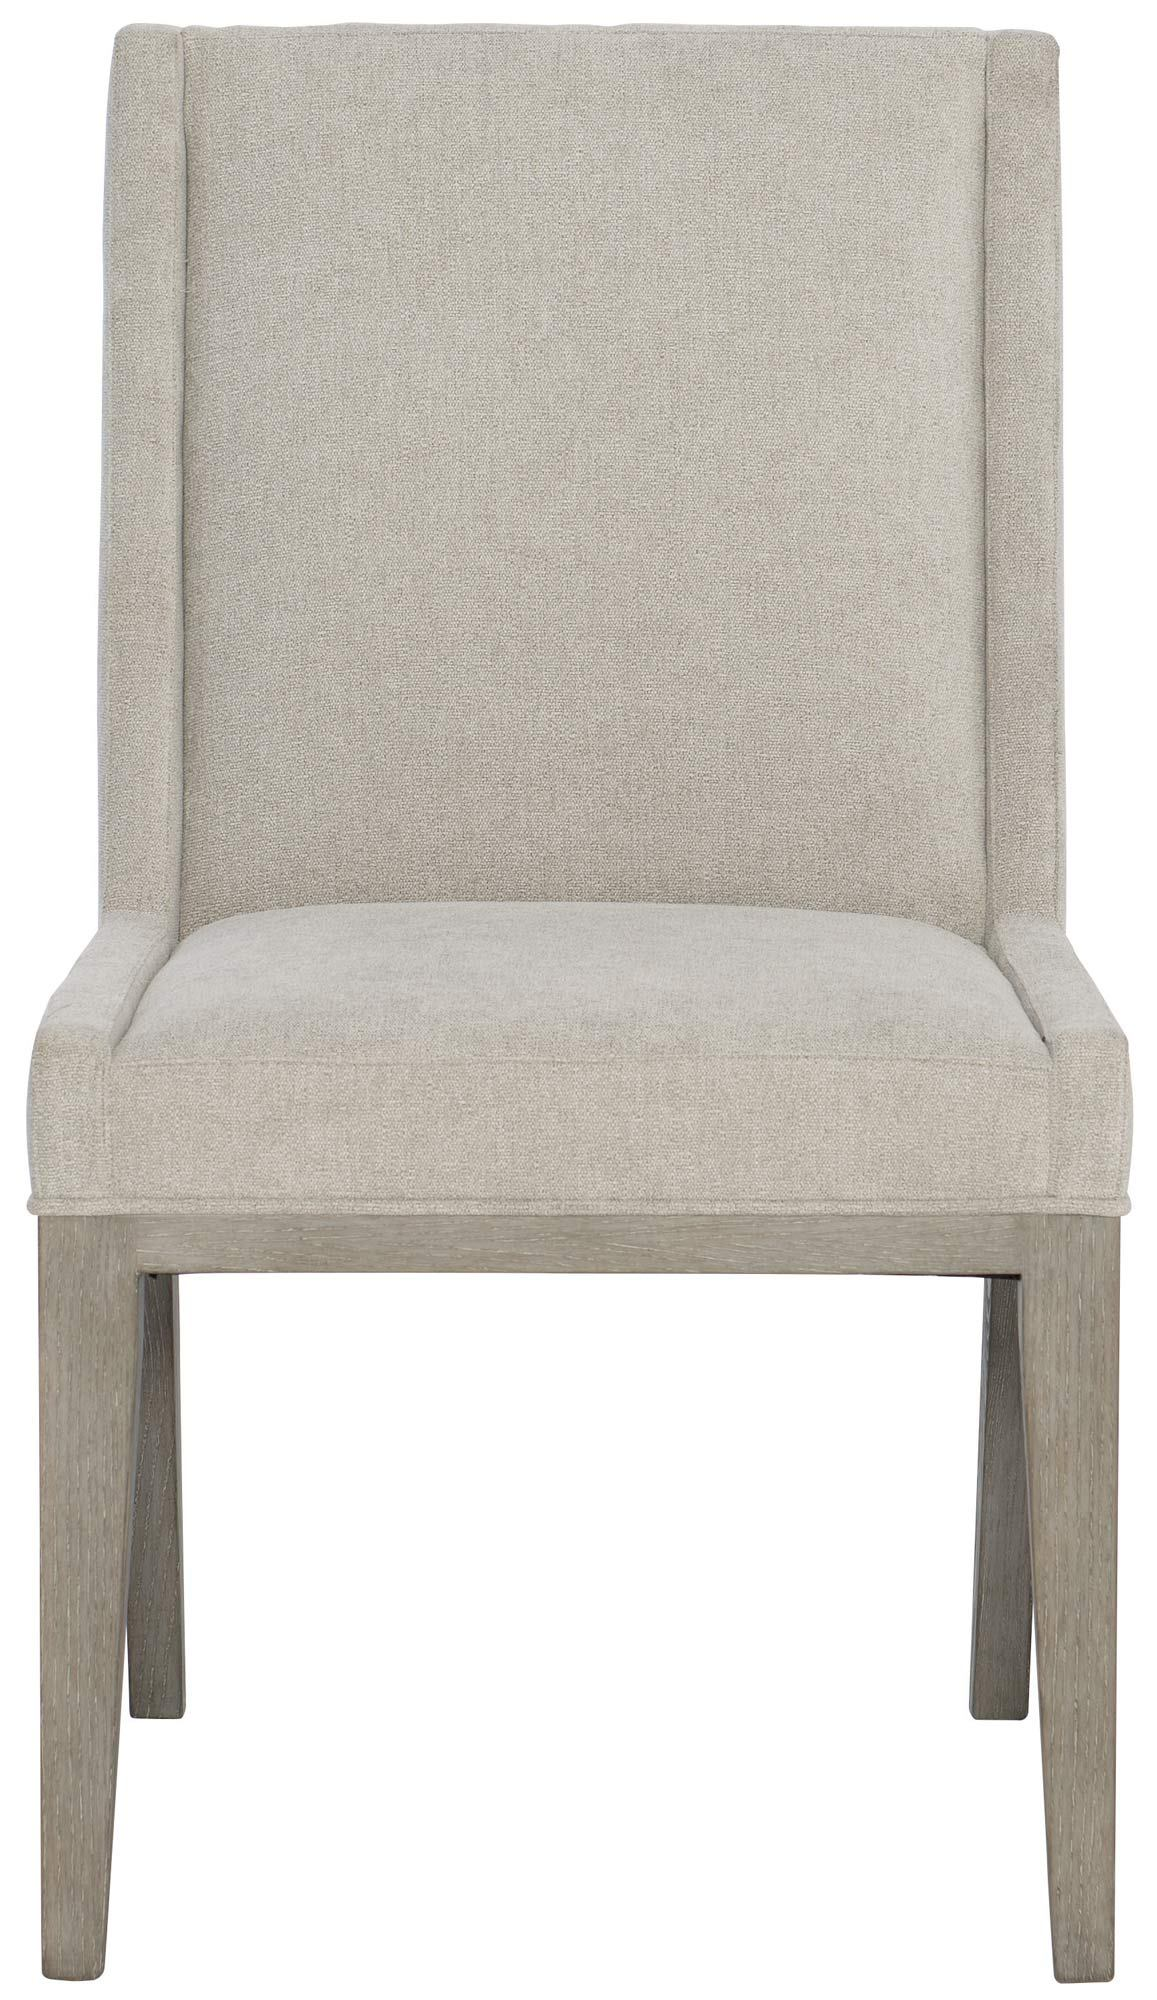 Bernhardt Linea Upholstered Side Chair in Cerused Greige (Set of 2)